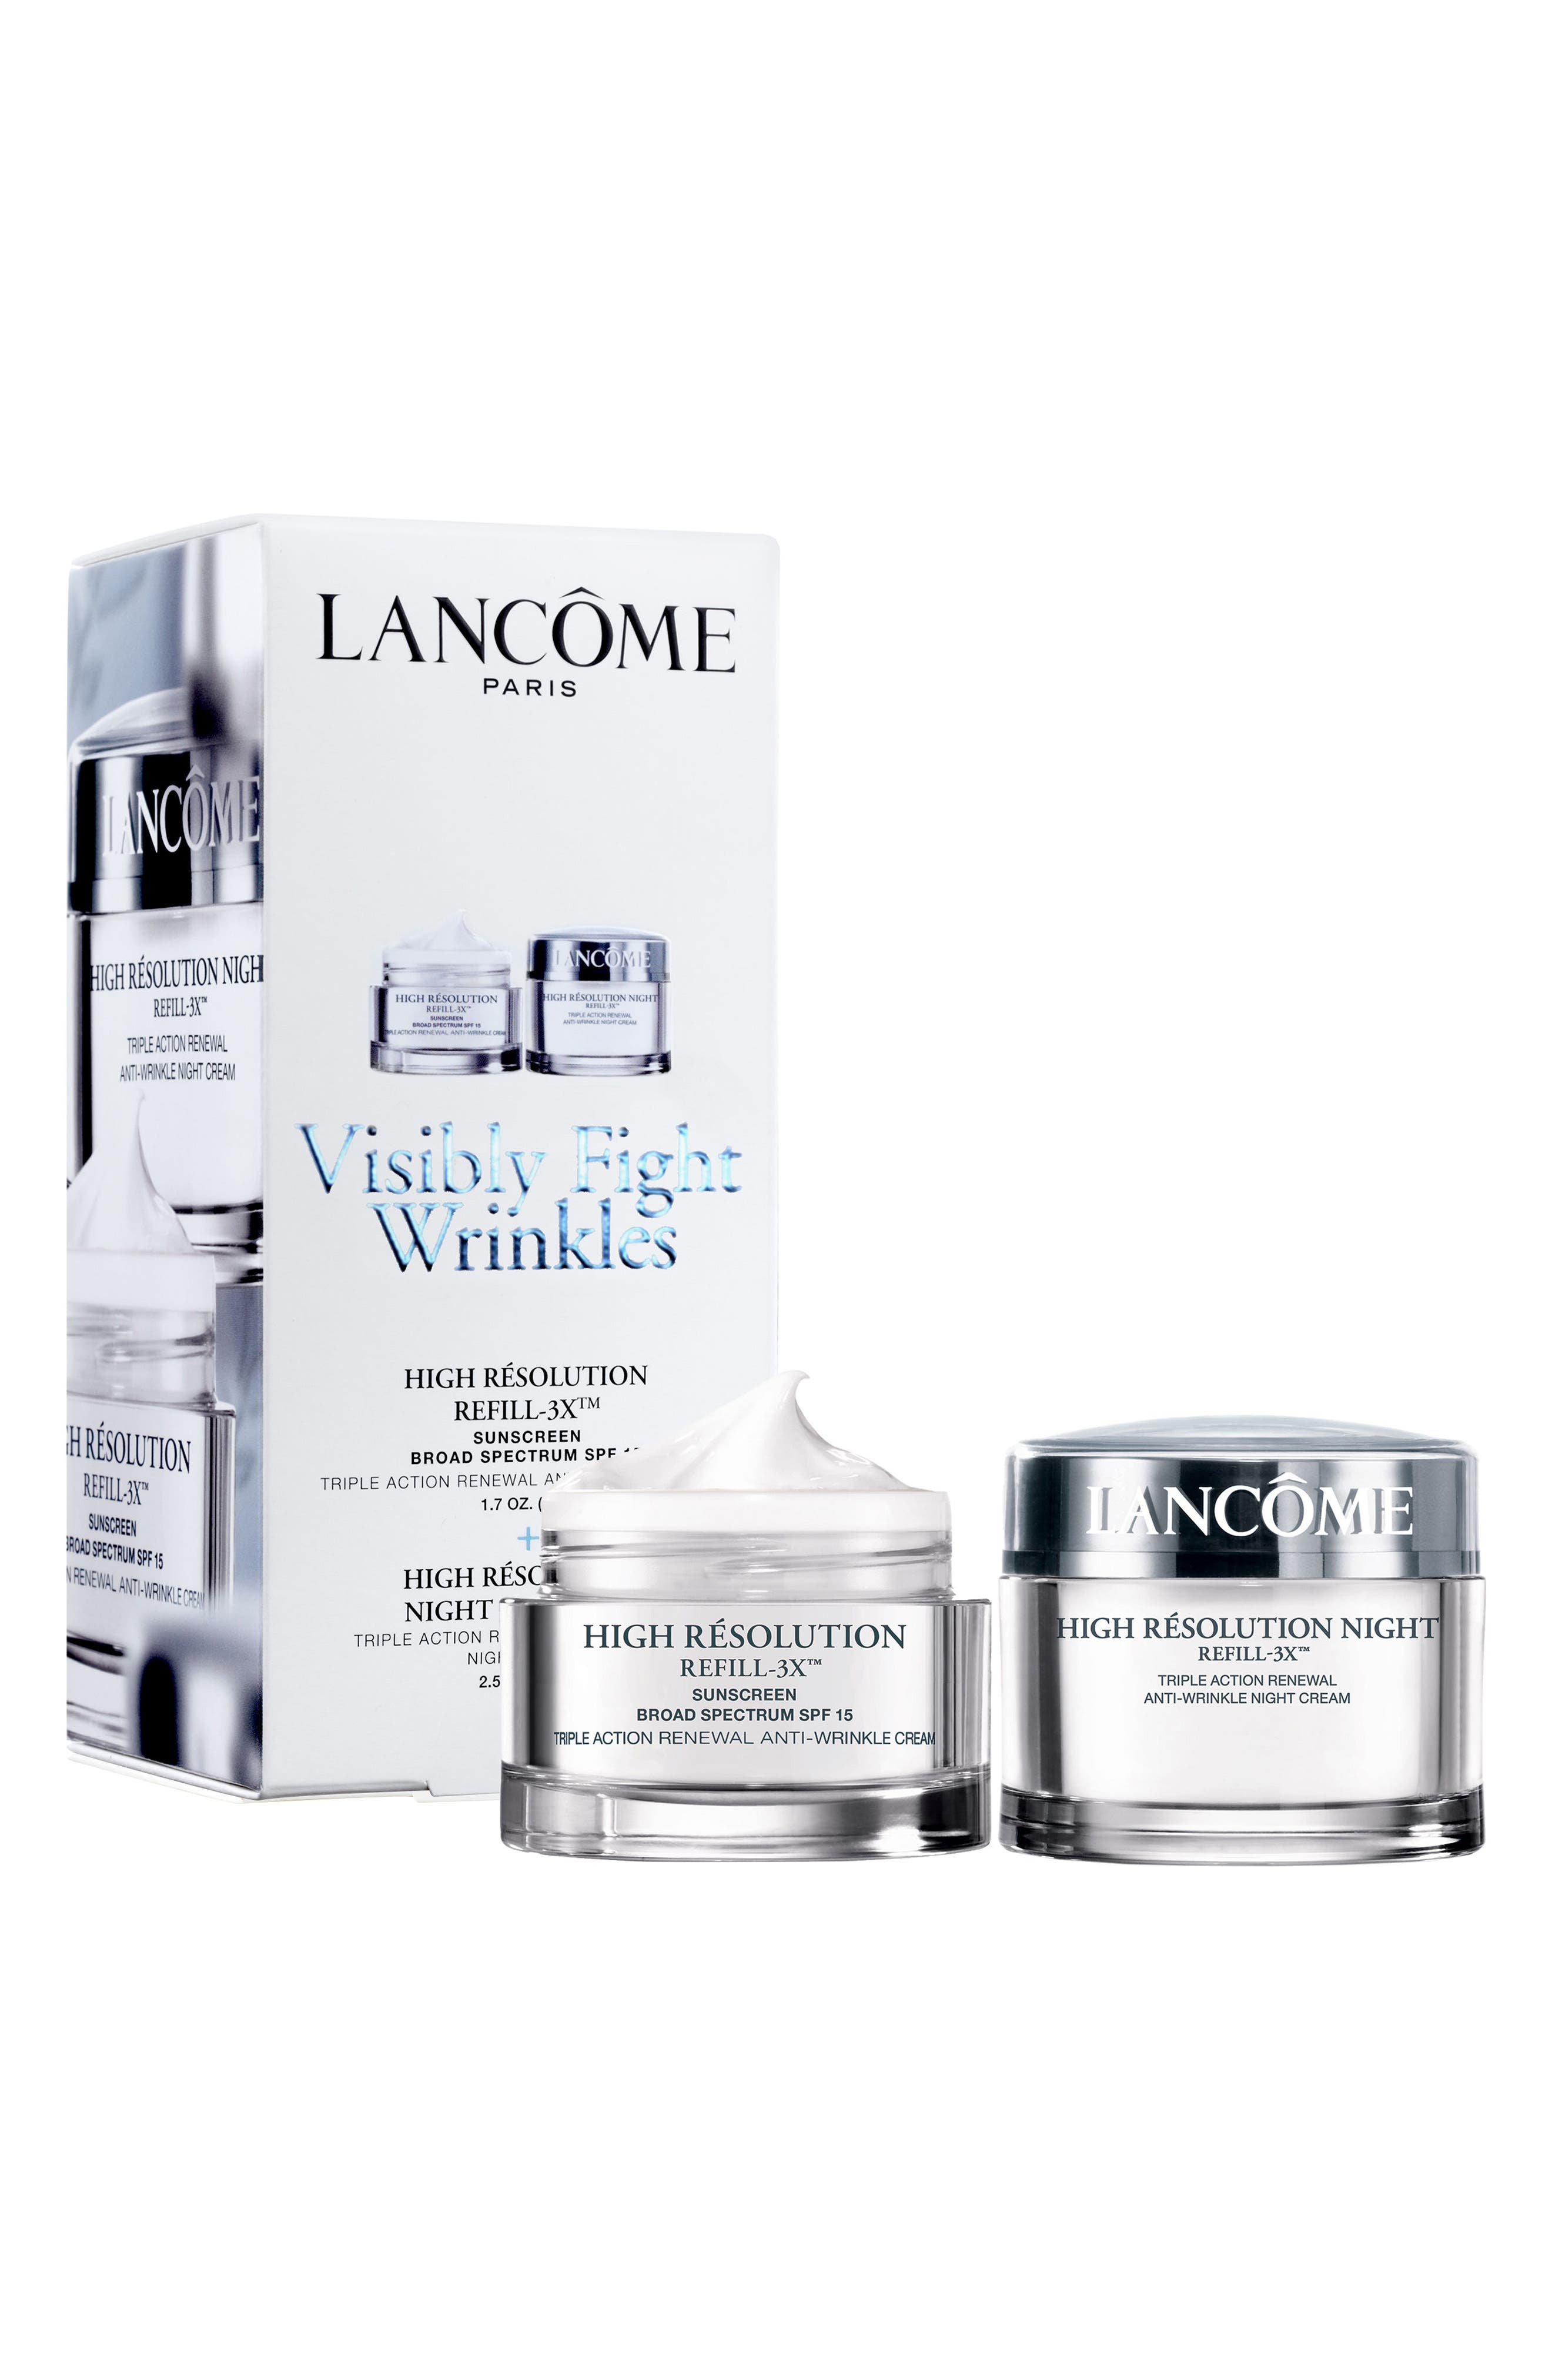 Alternate Image 1 Selected - Lancôme High Résolution Refill-3X™ Duo ($174 Value)